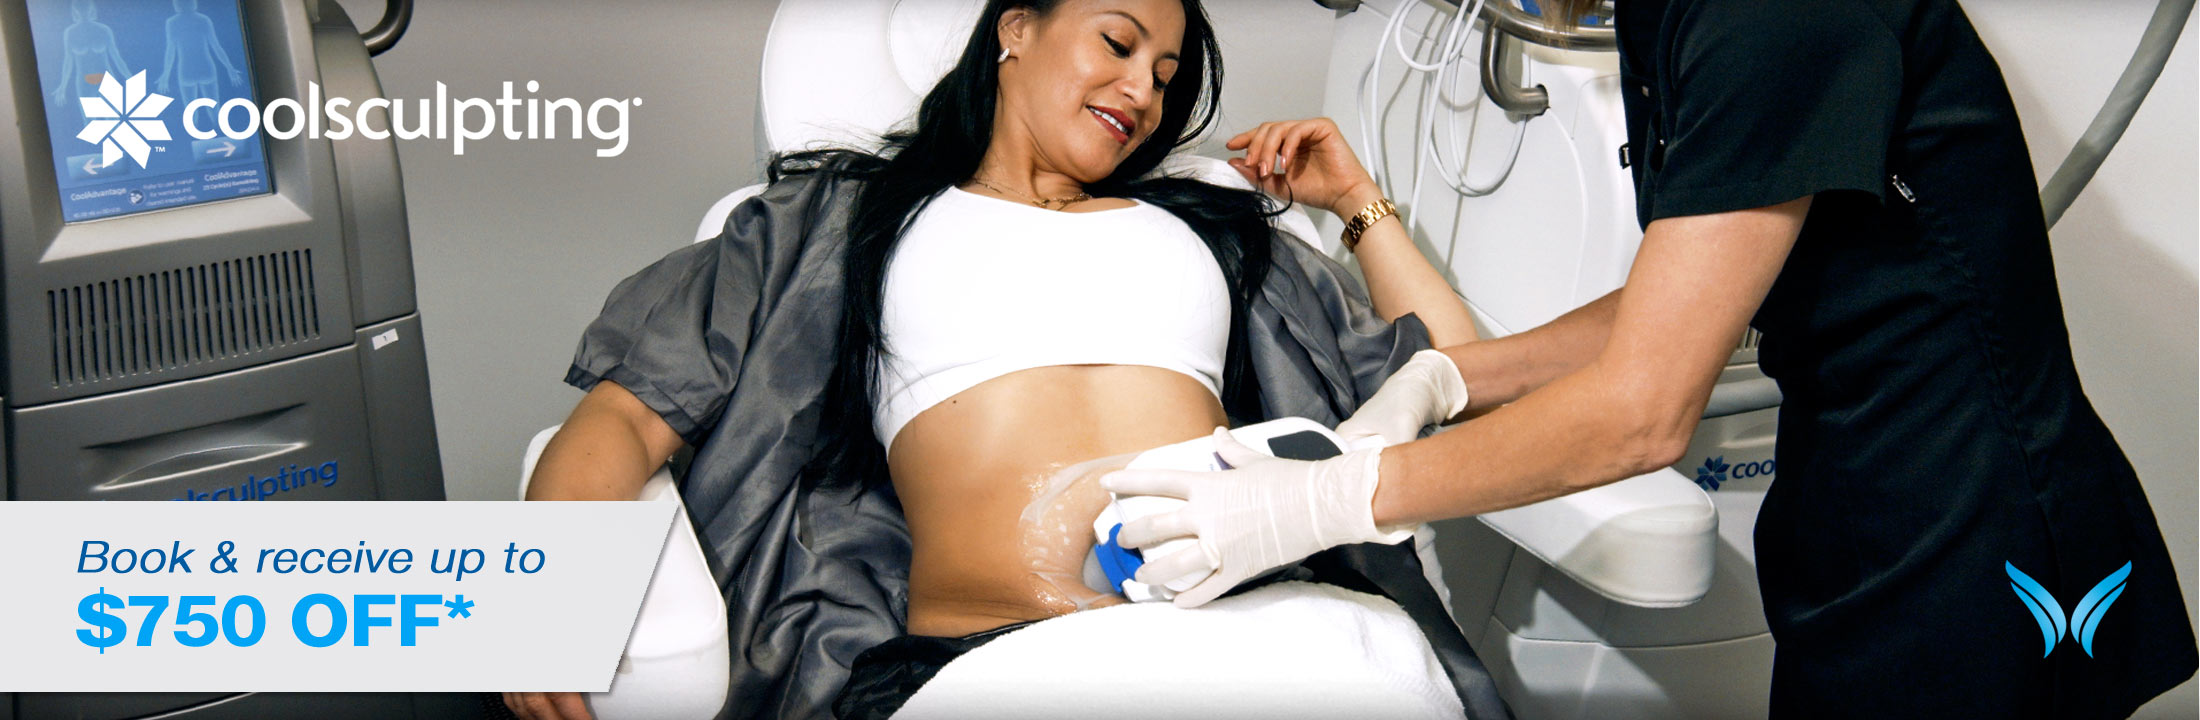 CoolSculpting Center of Excellence in Miami